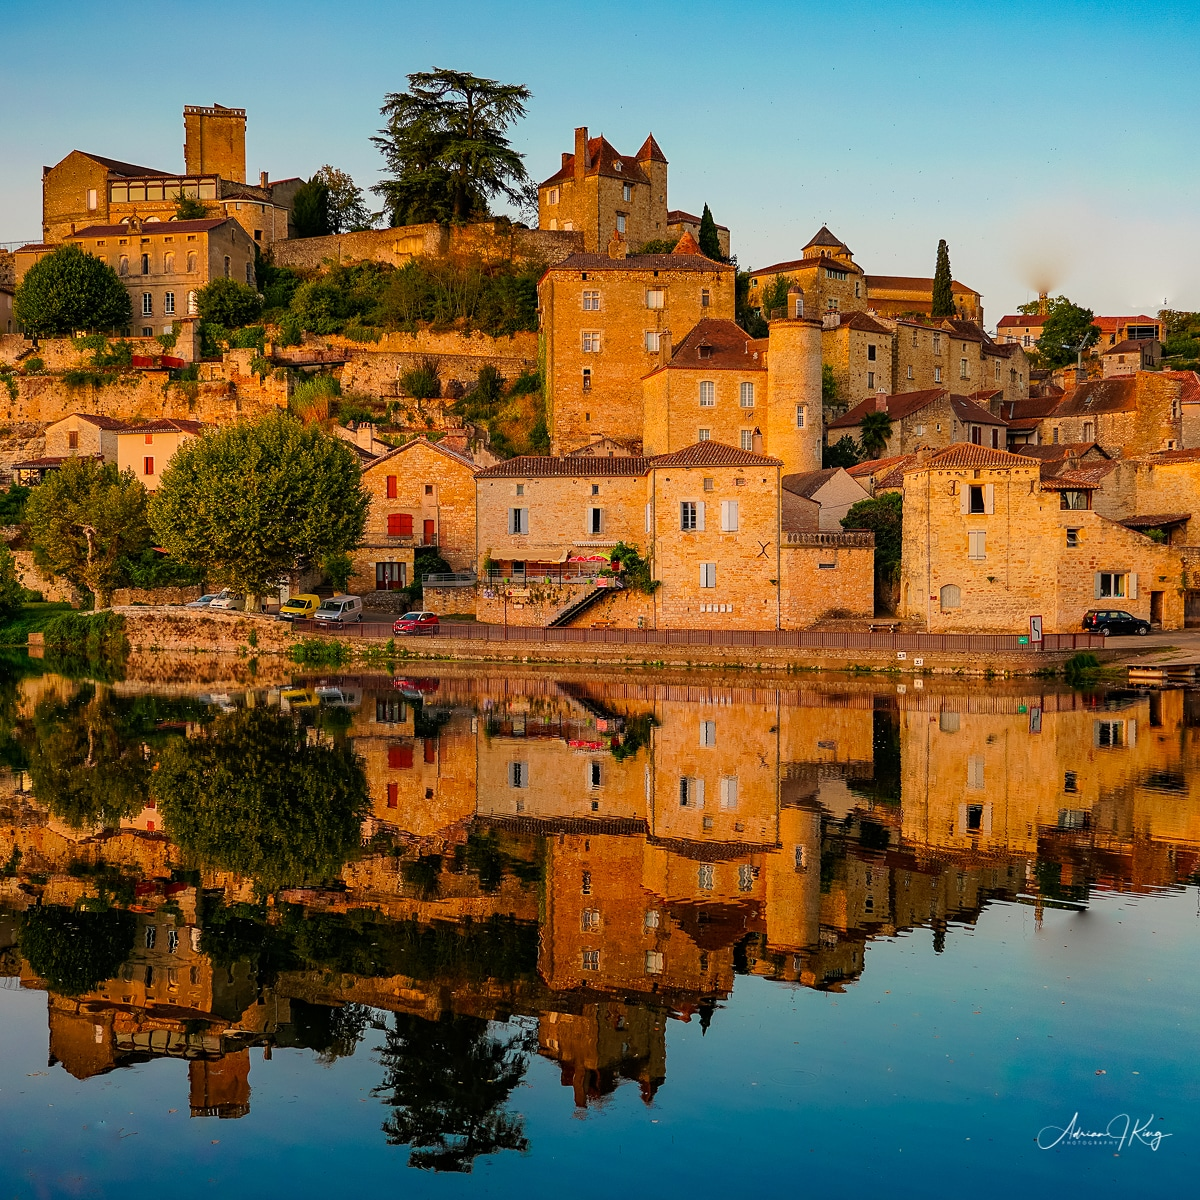 Puy L'Eveque, France